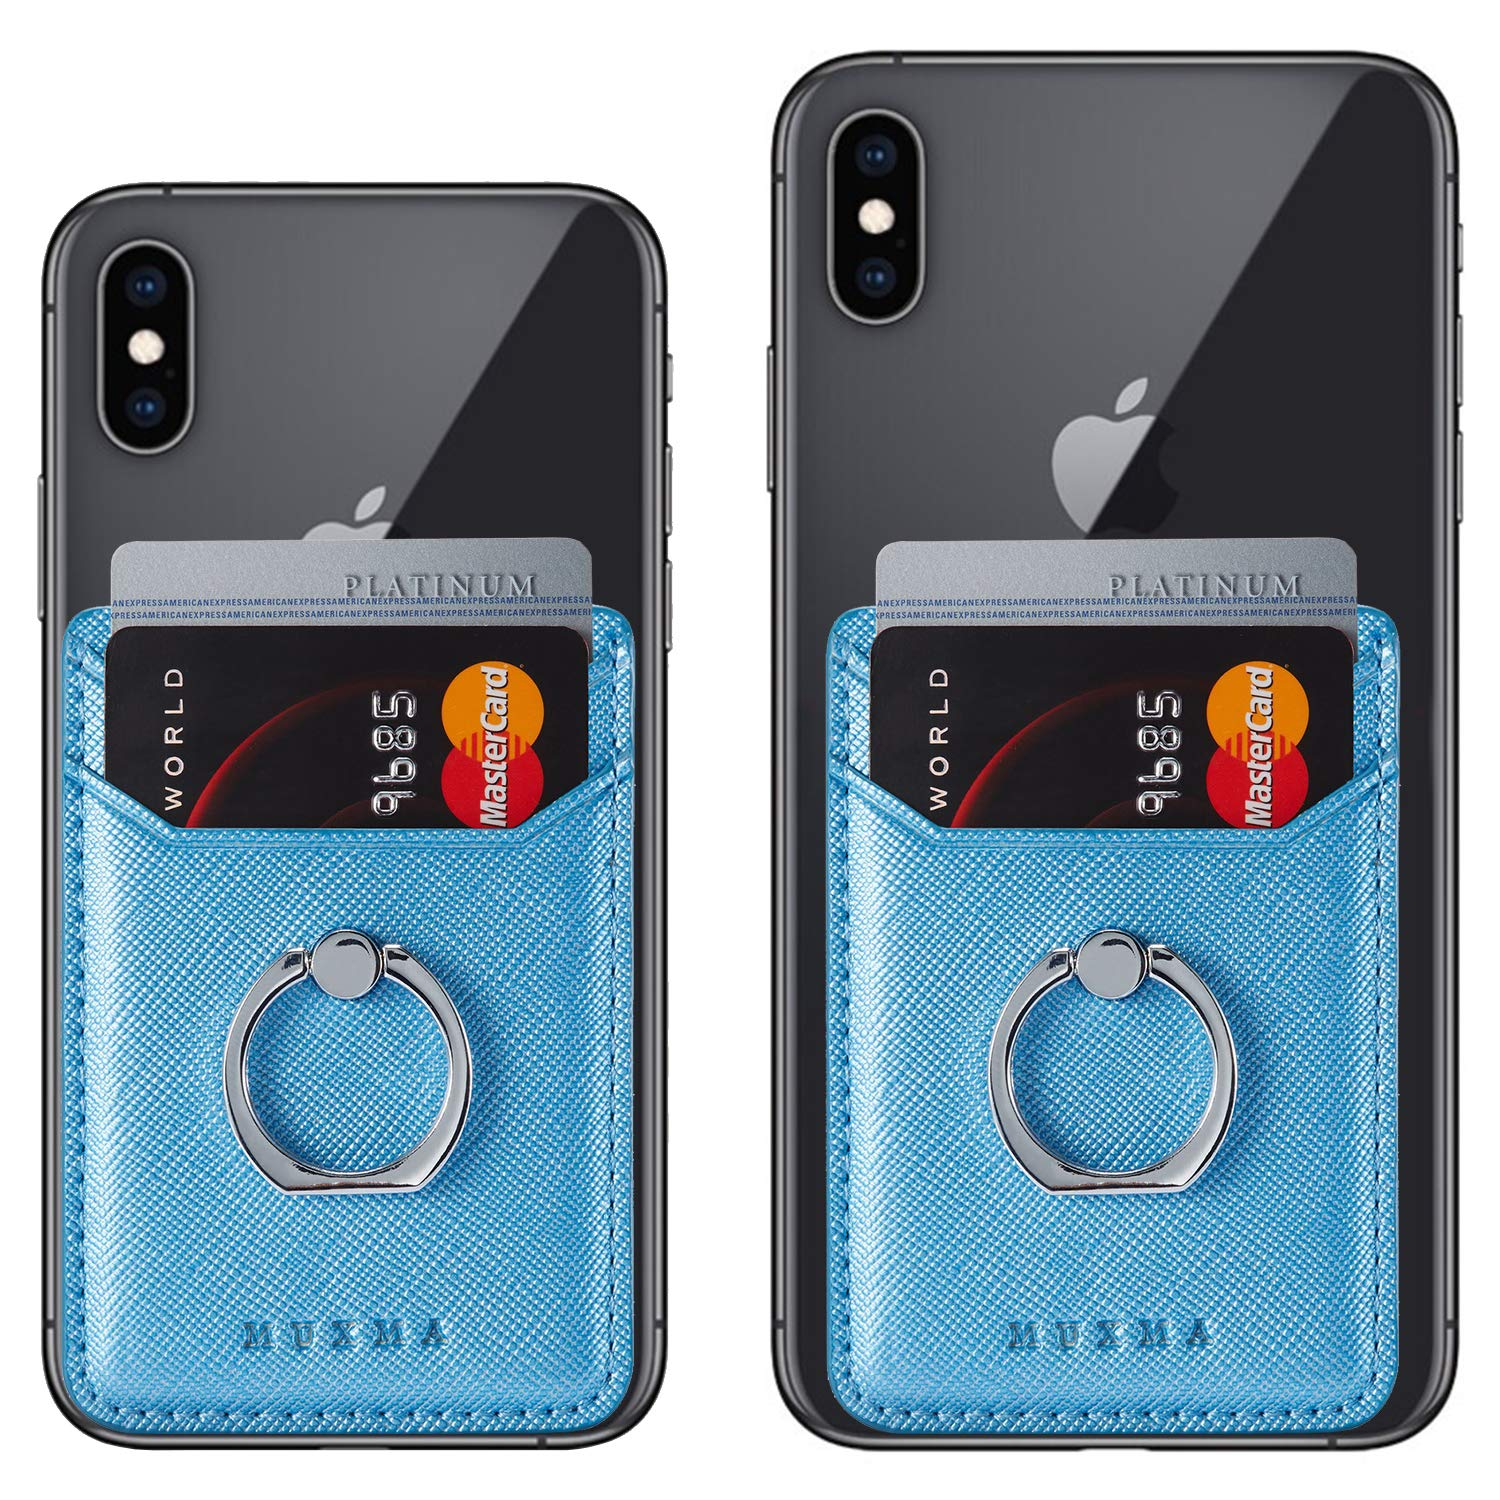 Card Holder for Back of Phone Ring Stand Cell Phone Stick on Wallet Credit Finger for iPhone//Samsung//Smartphone Blue